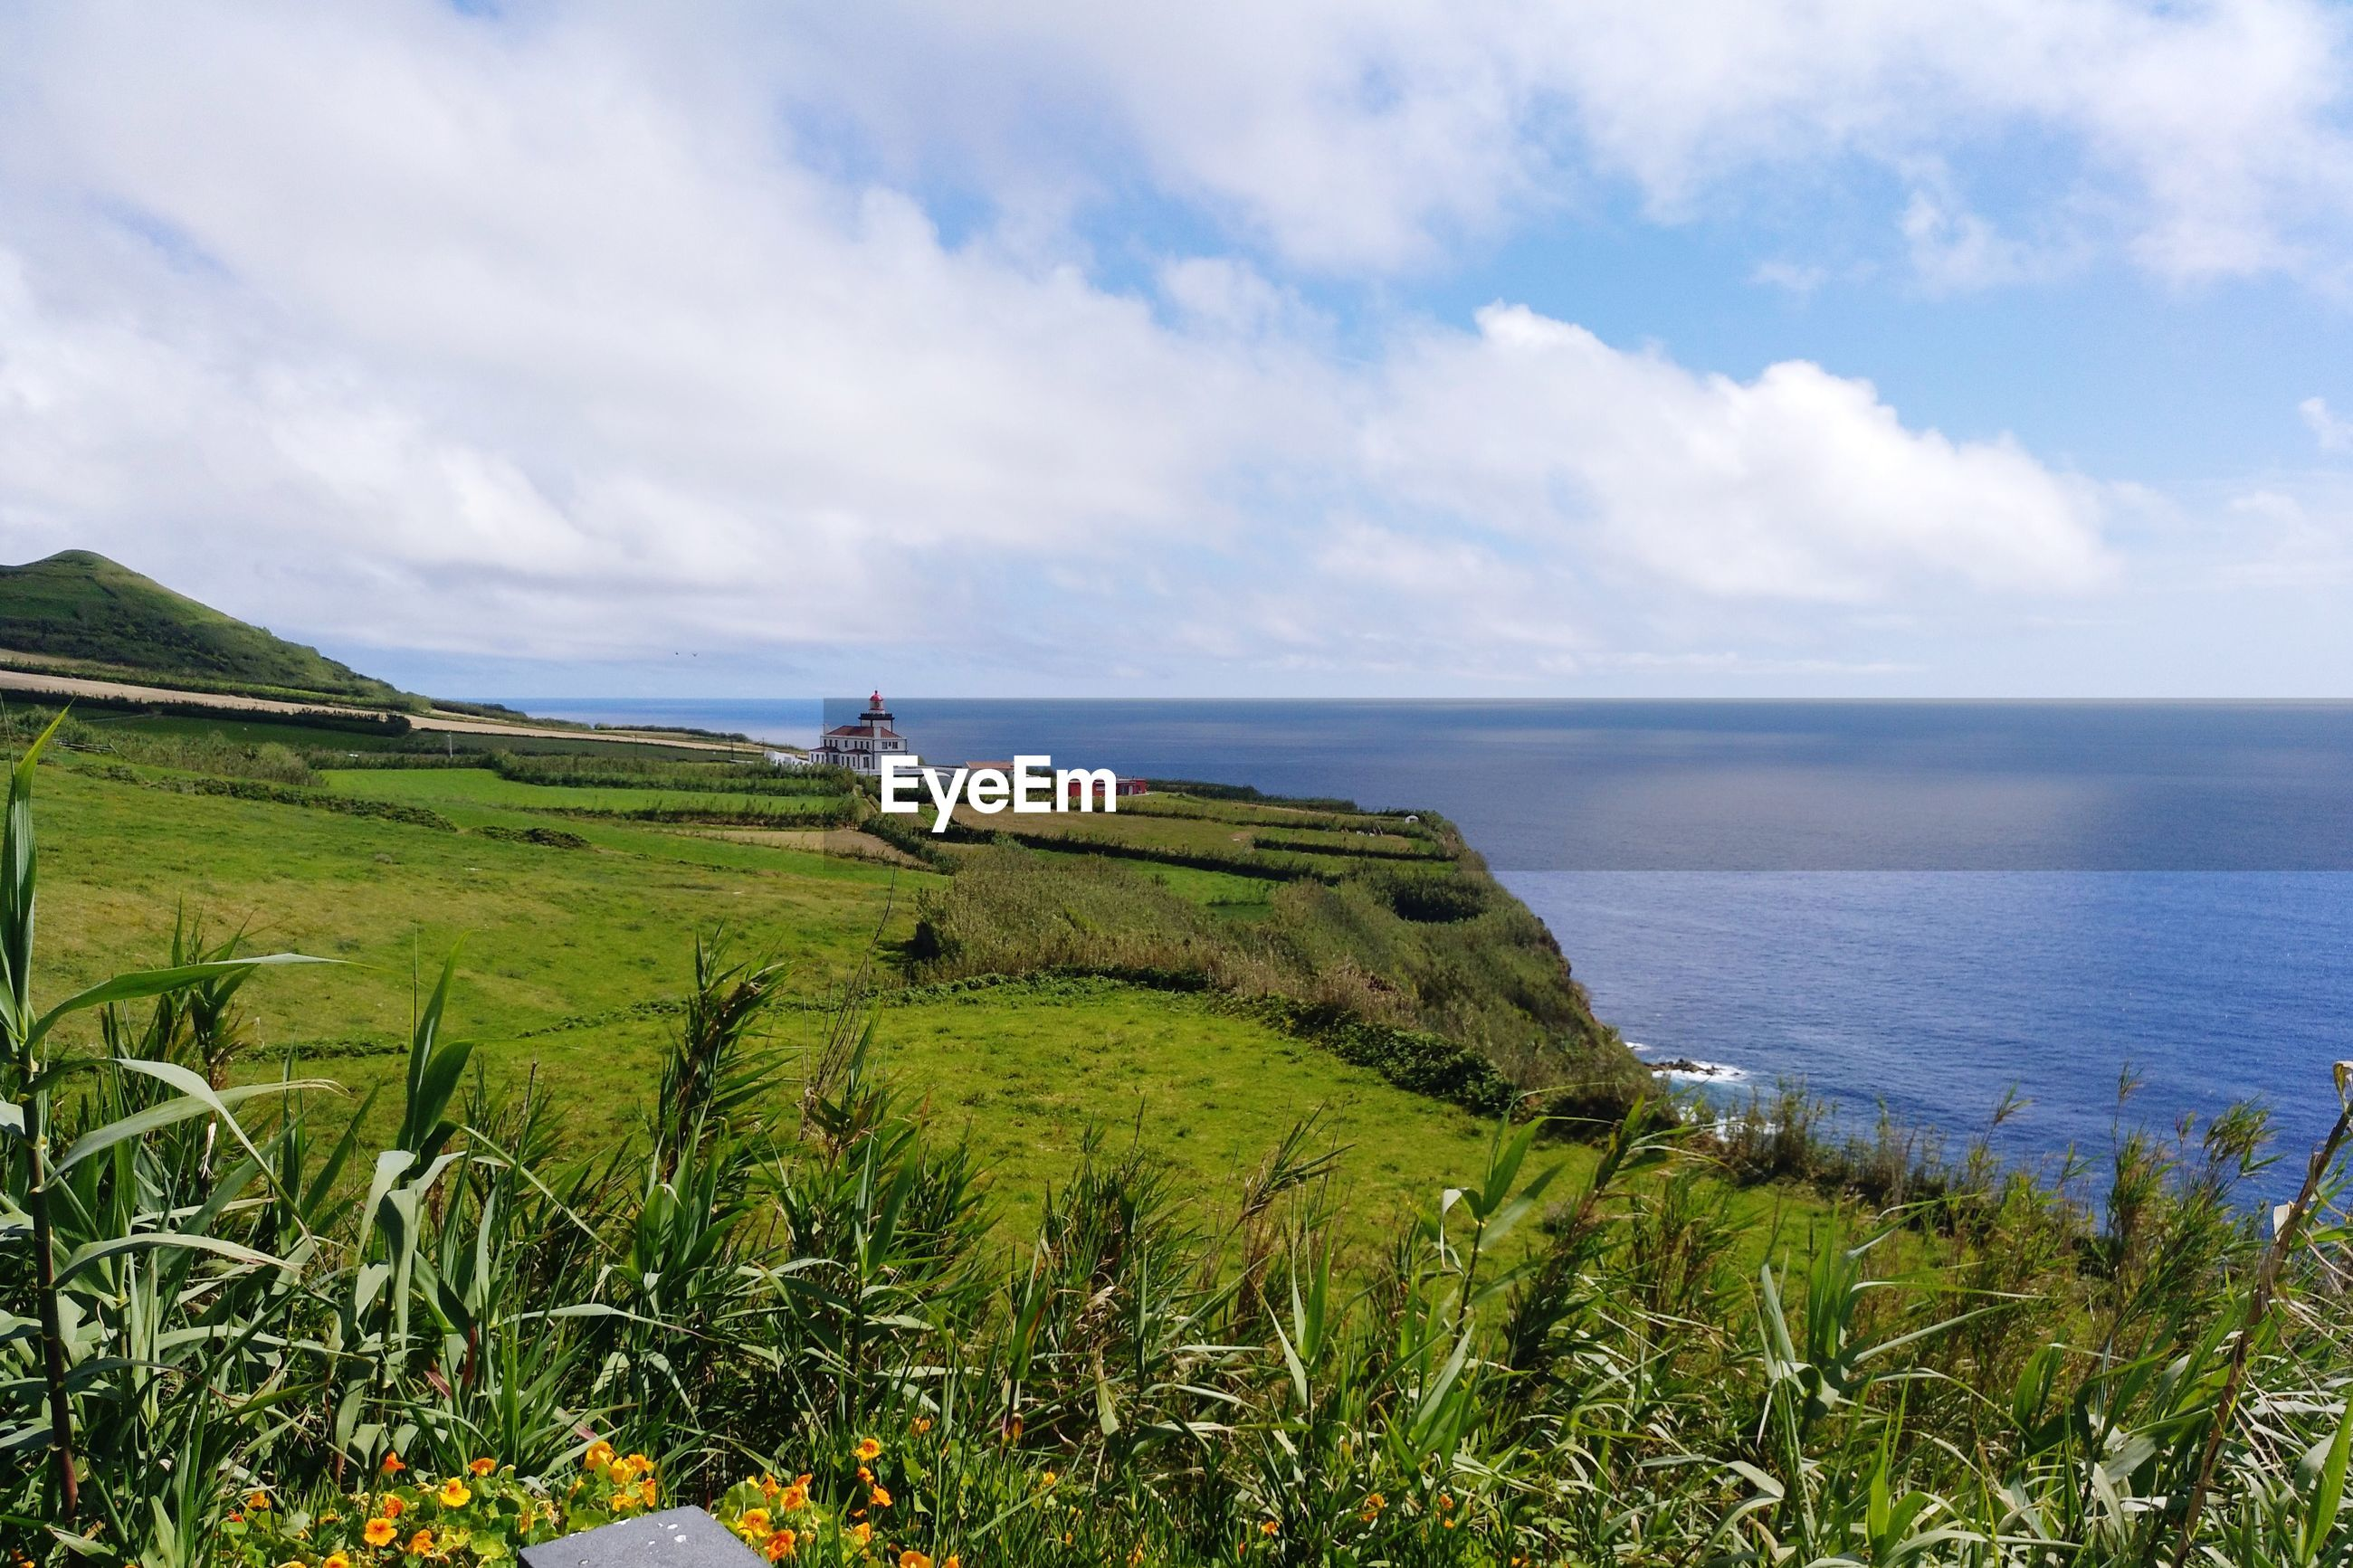 SCENIC VIEW OF SEA AND SHORE AGAINST SKY